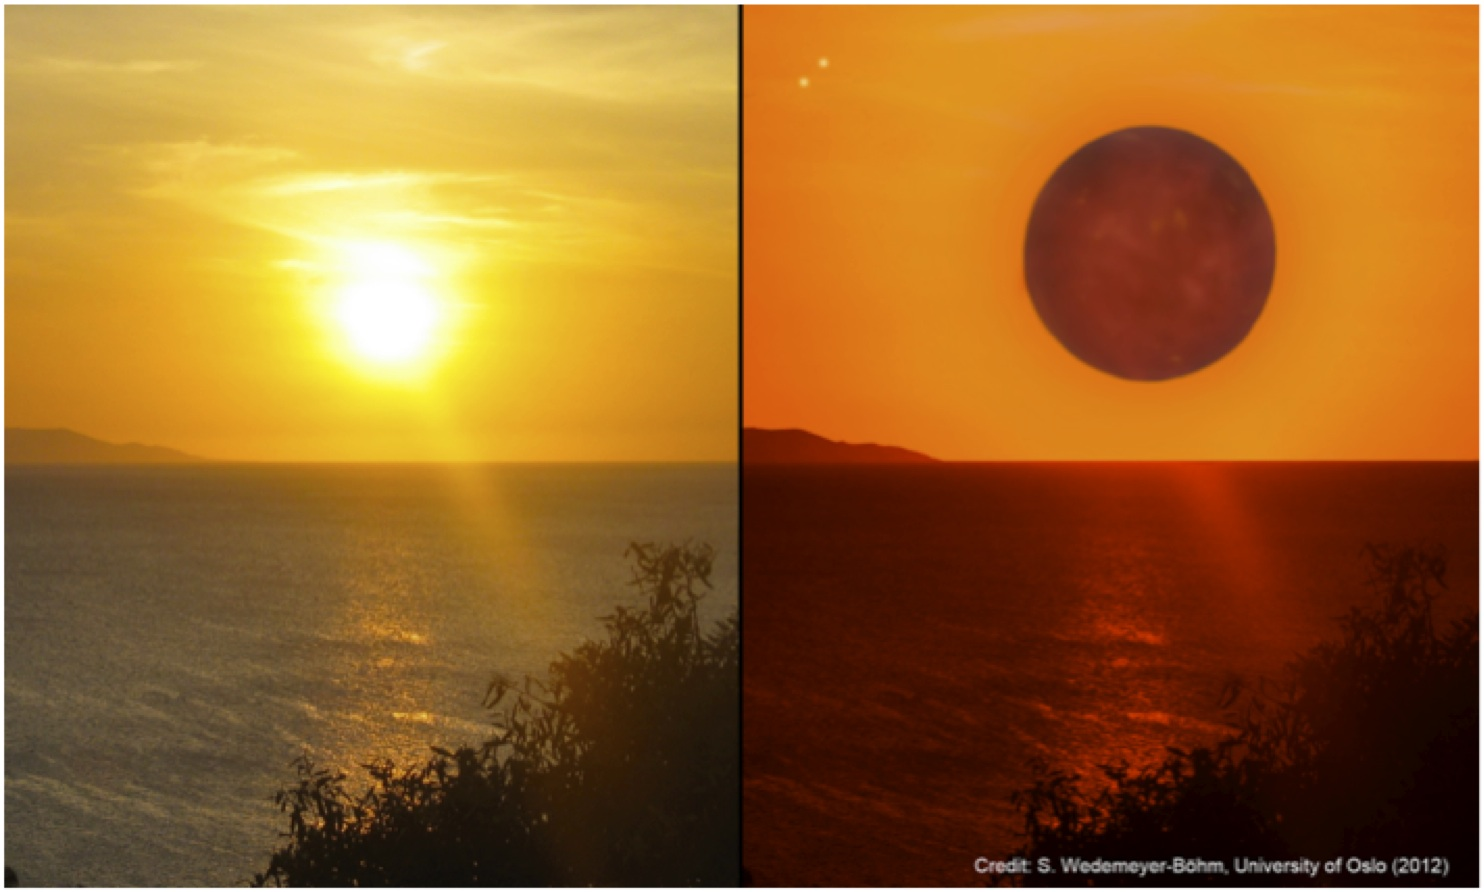 The Sun seen from Earth (left) and an impression how the red host star could look from the surface of the planet Gliese 667Cc.